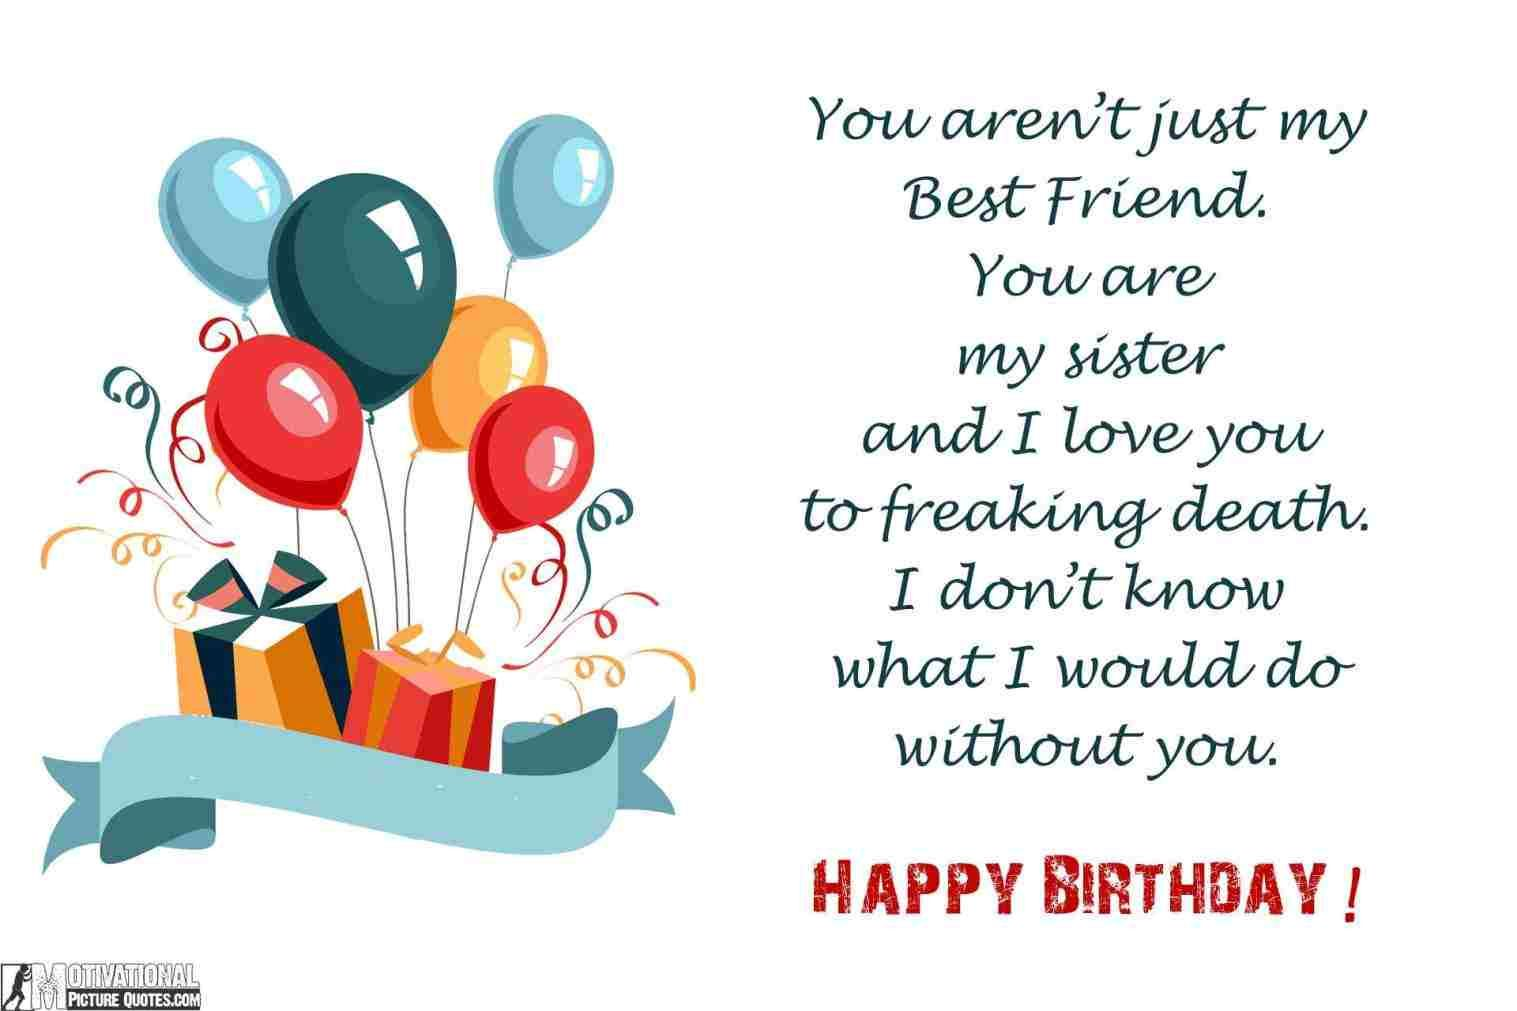 Happy Birthday Wishes Birthday Wishes To Hindi Download Free Happy Birth Birthday Wishes For Myself Happy Birthday Quotes For Friends Sister Birthday Quotes